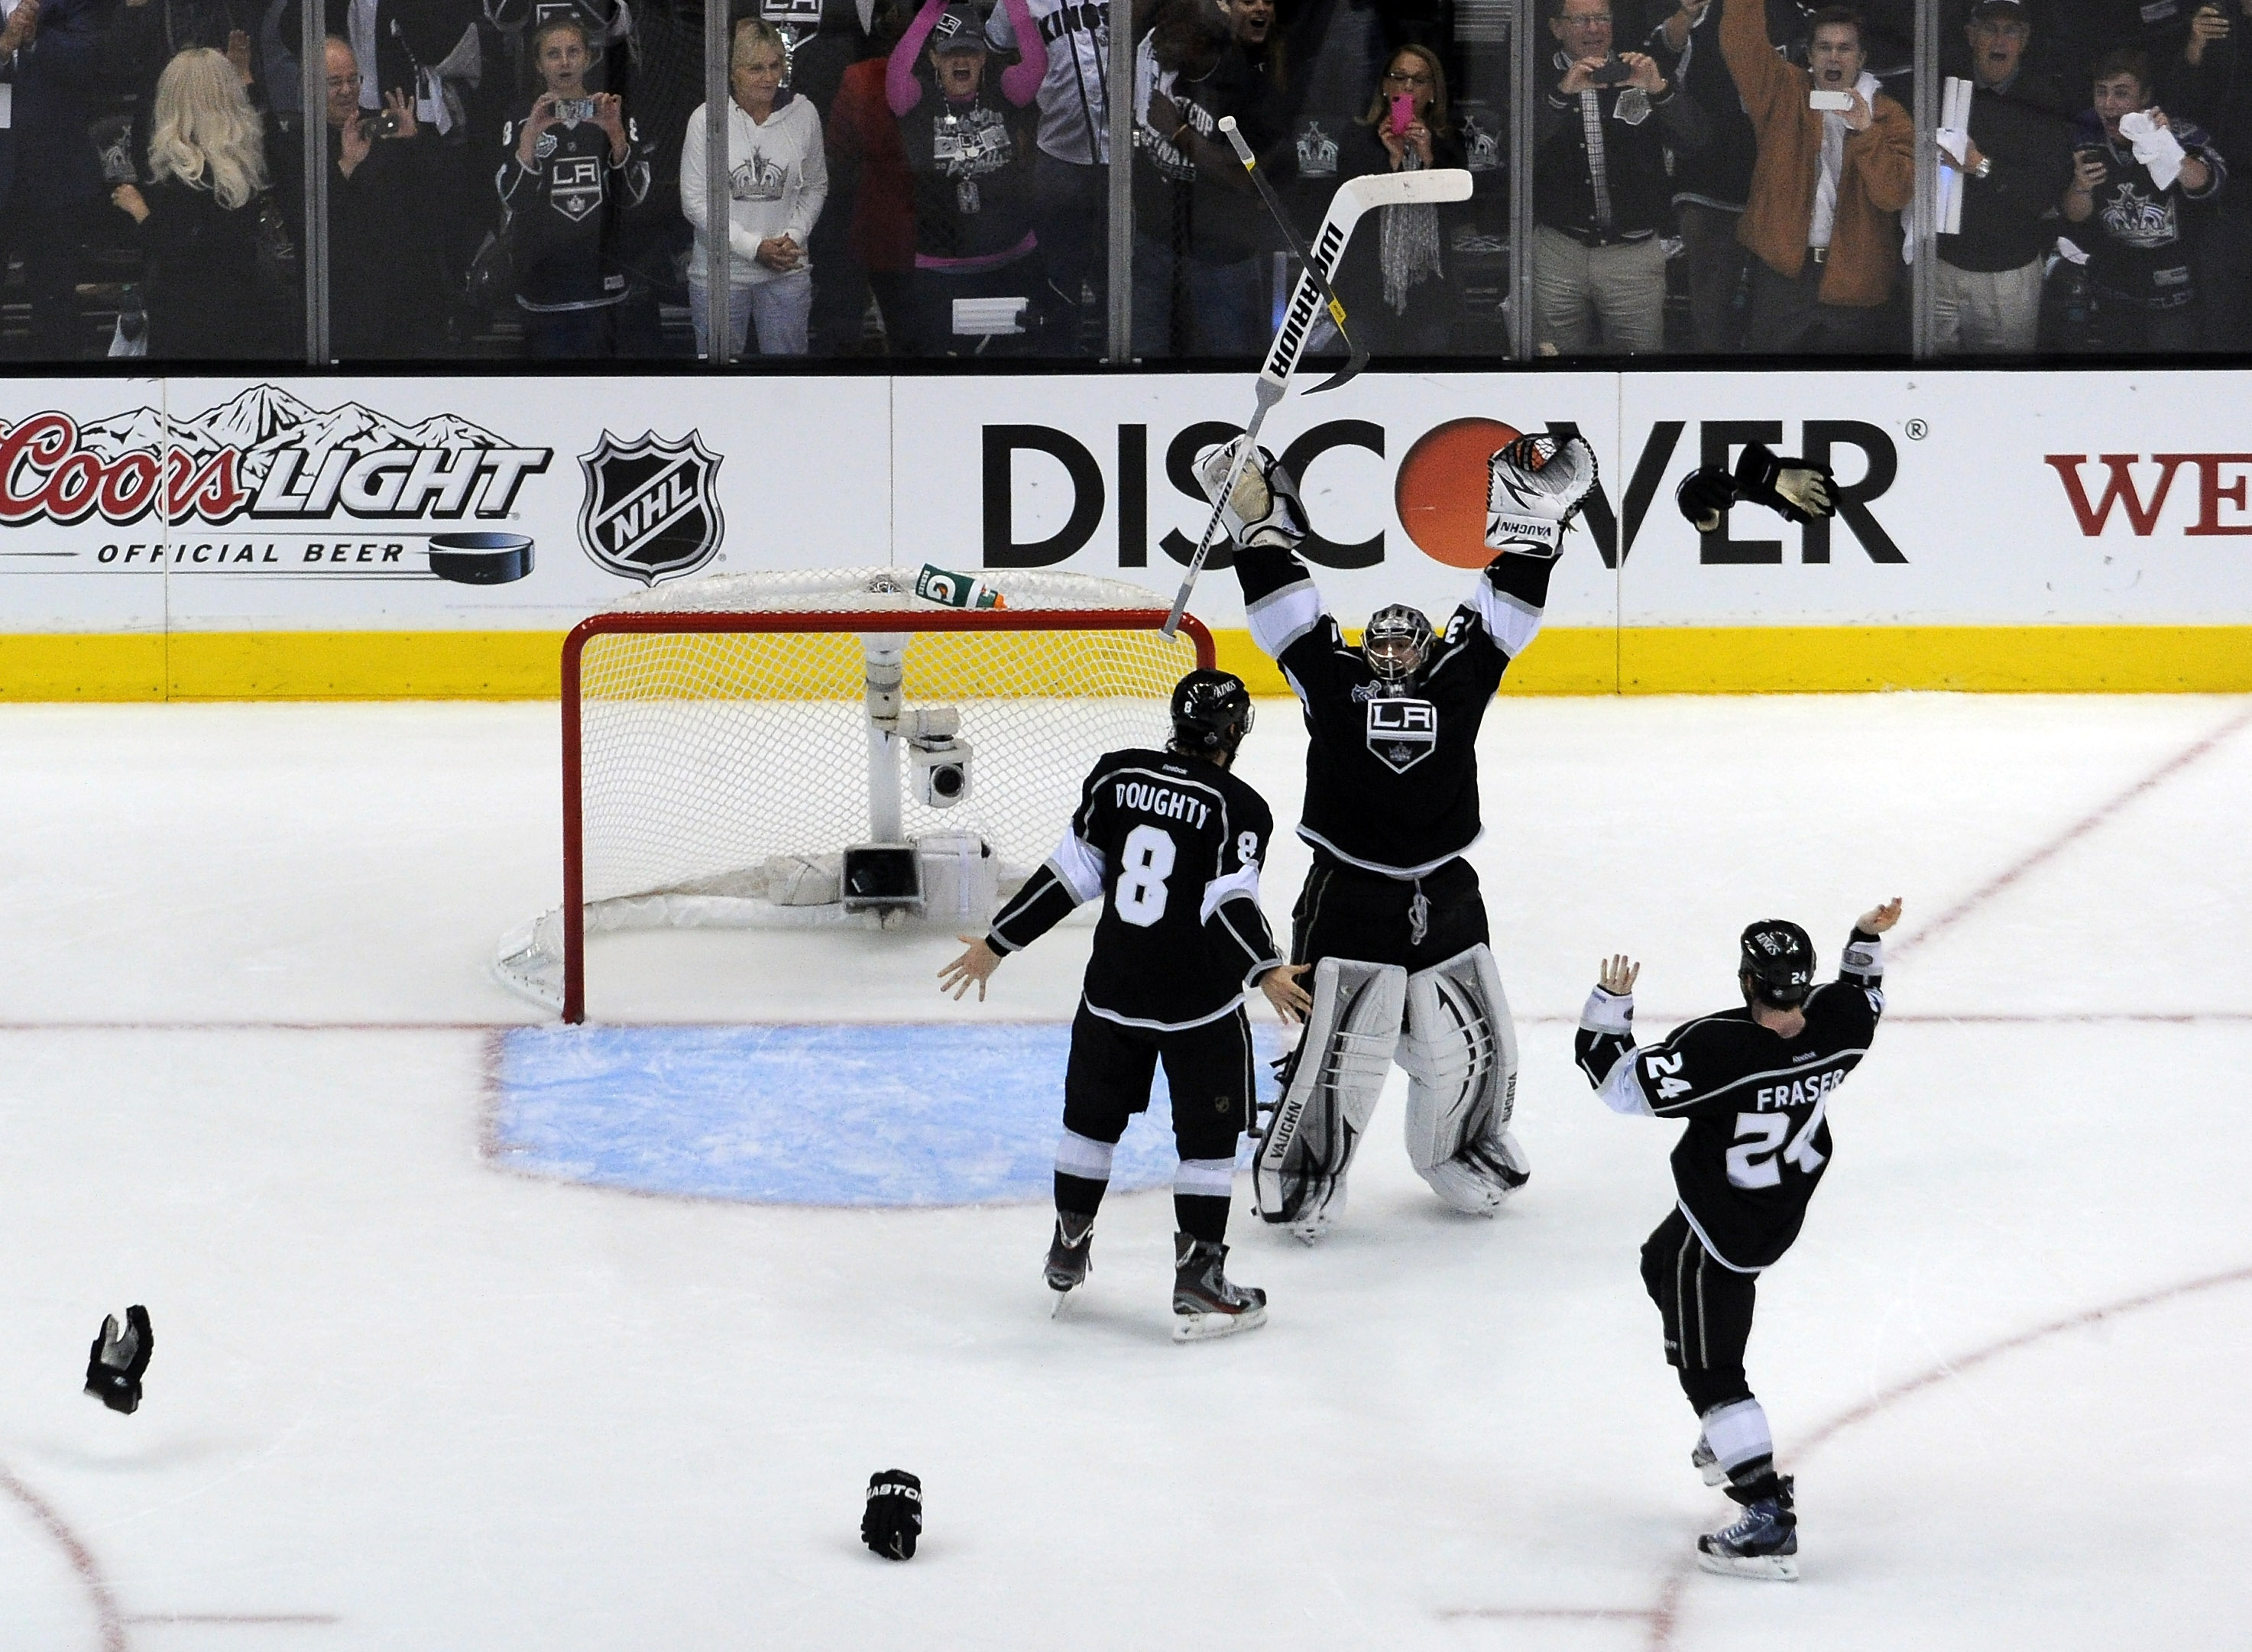 Los Angeles Kings Hd Wallpaper Background Image 2947x2162 Id